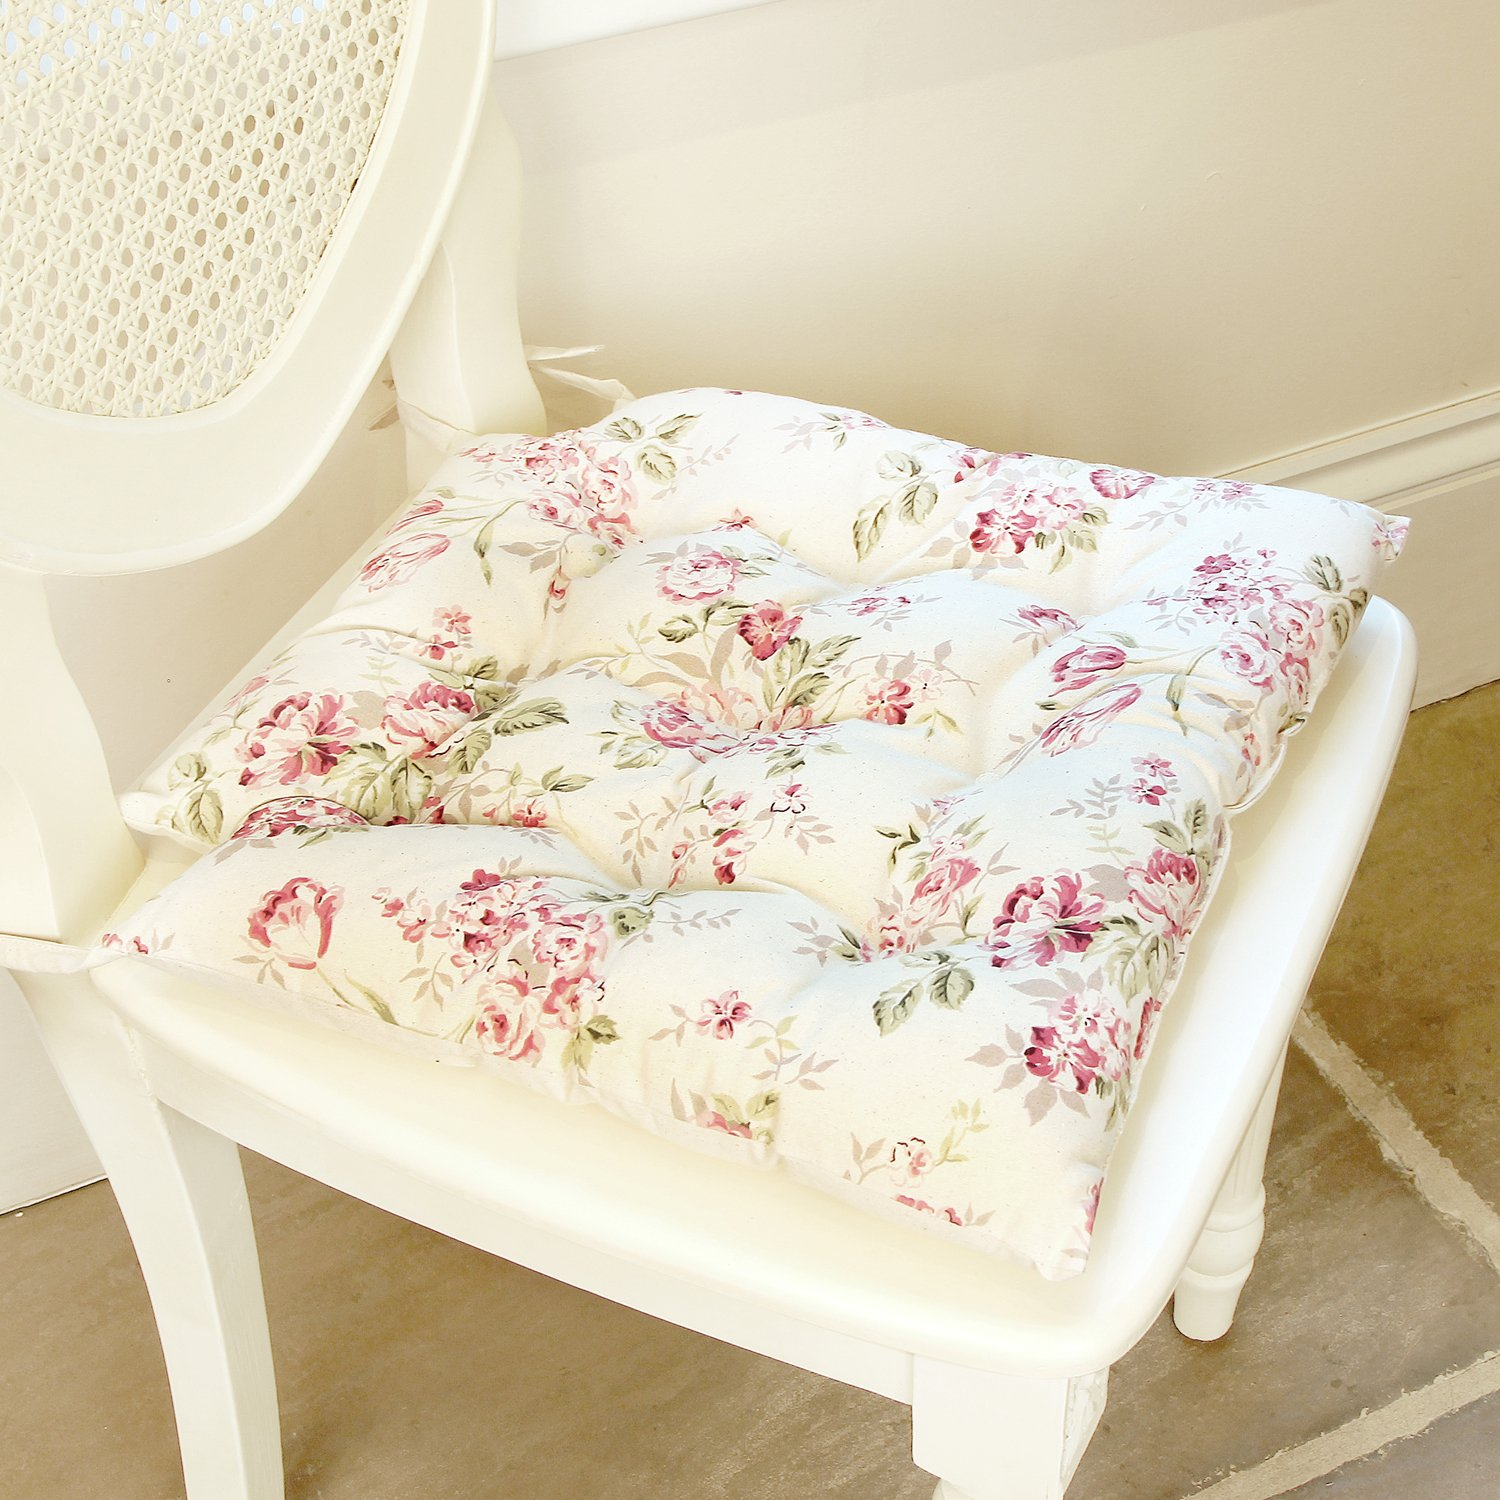 Good Set Of 2 Summer Rose Vintage Floral Pink U0026 Cream Square Seat Pads With Chair  Ties: Amazon.co.uk: Kitchen U0026 Home